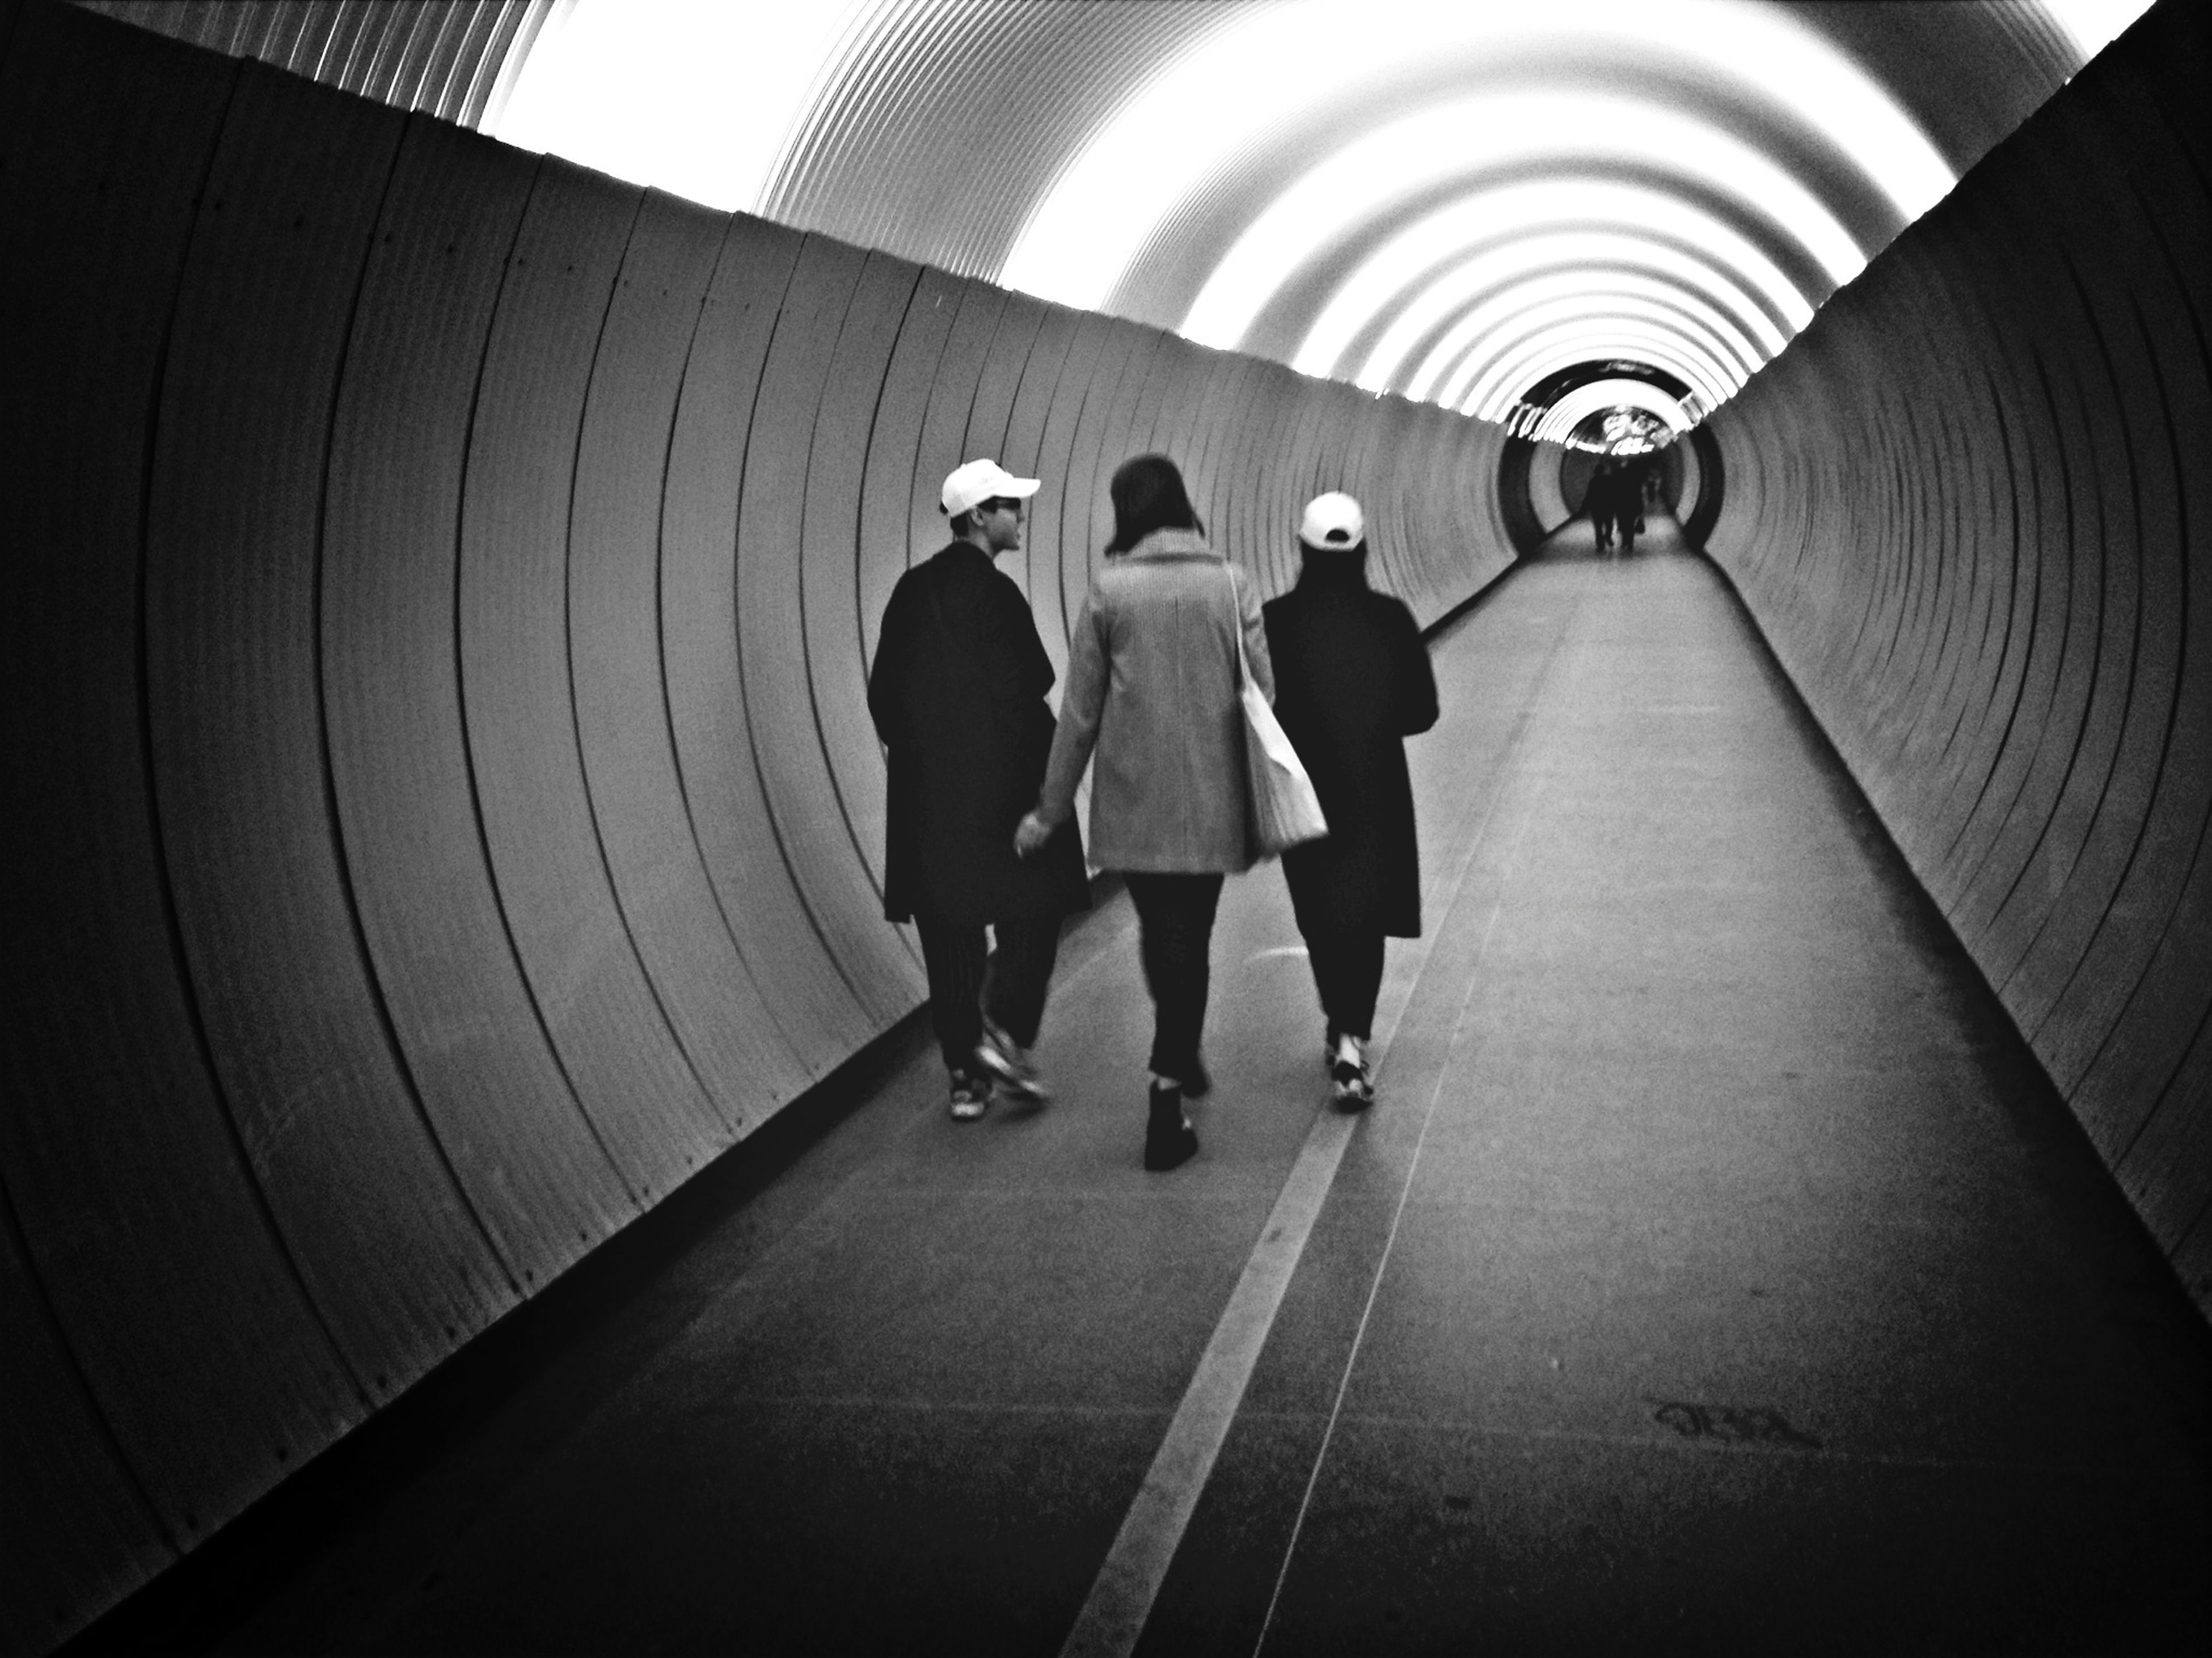 walking, full length, rear view, indoors, the way forward, men, lifestyles, tunnel, person, leisure activity, togetherness, diminishing perspective, transportation, vanishing point, on the move, architecture, built structure